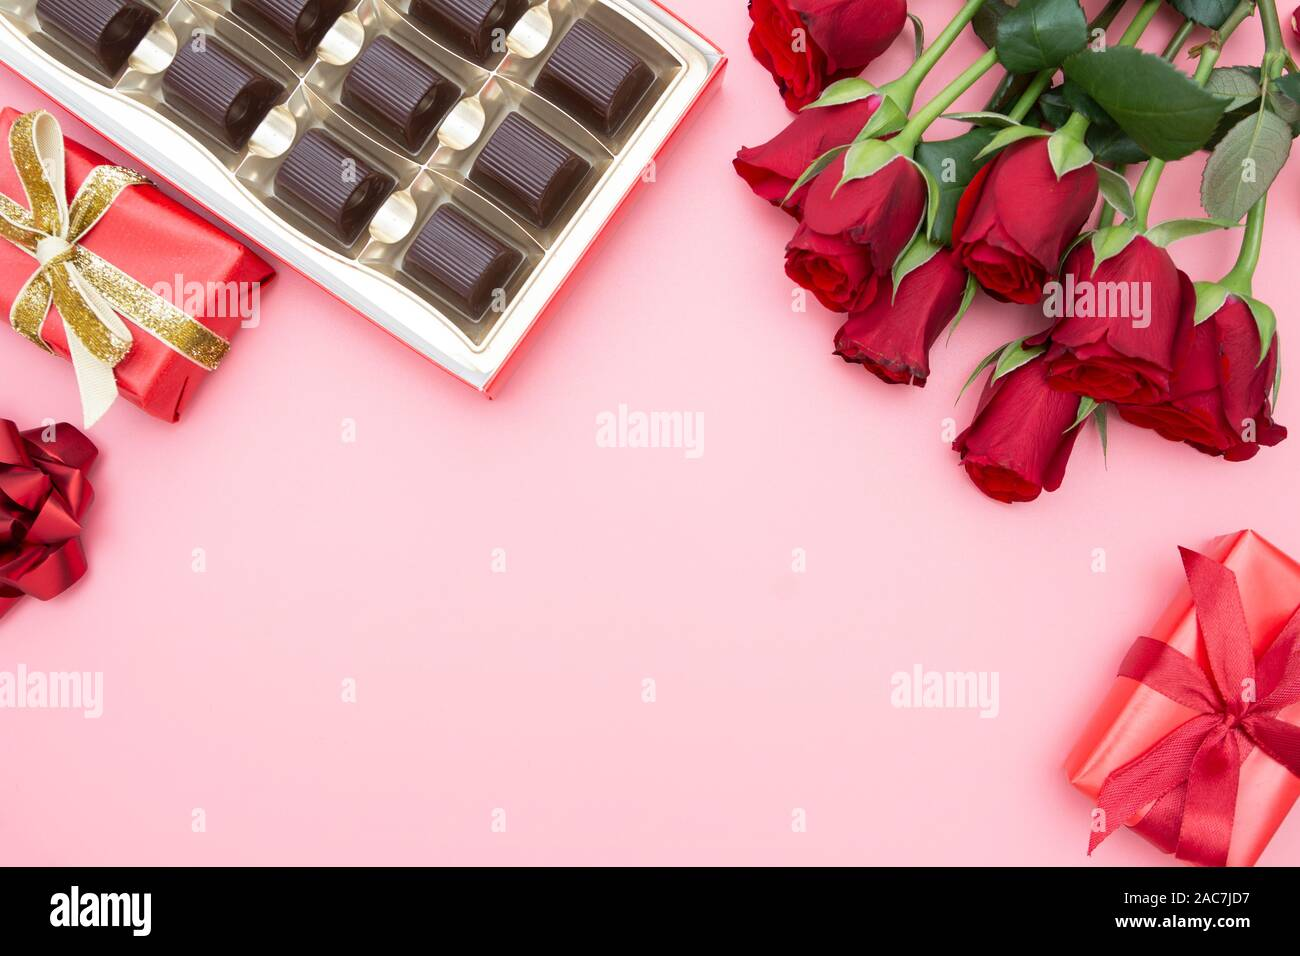 Valentine S Day Red Roses Gift Boxes And Chocolate Box With Ribbon Over Pinkl Background Flat Lay Birthday Abstract Background With Copy Space Stock Photo Alamy